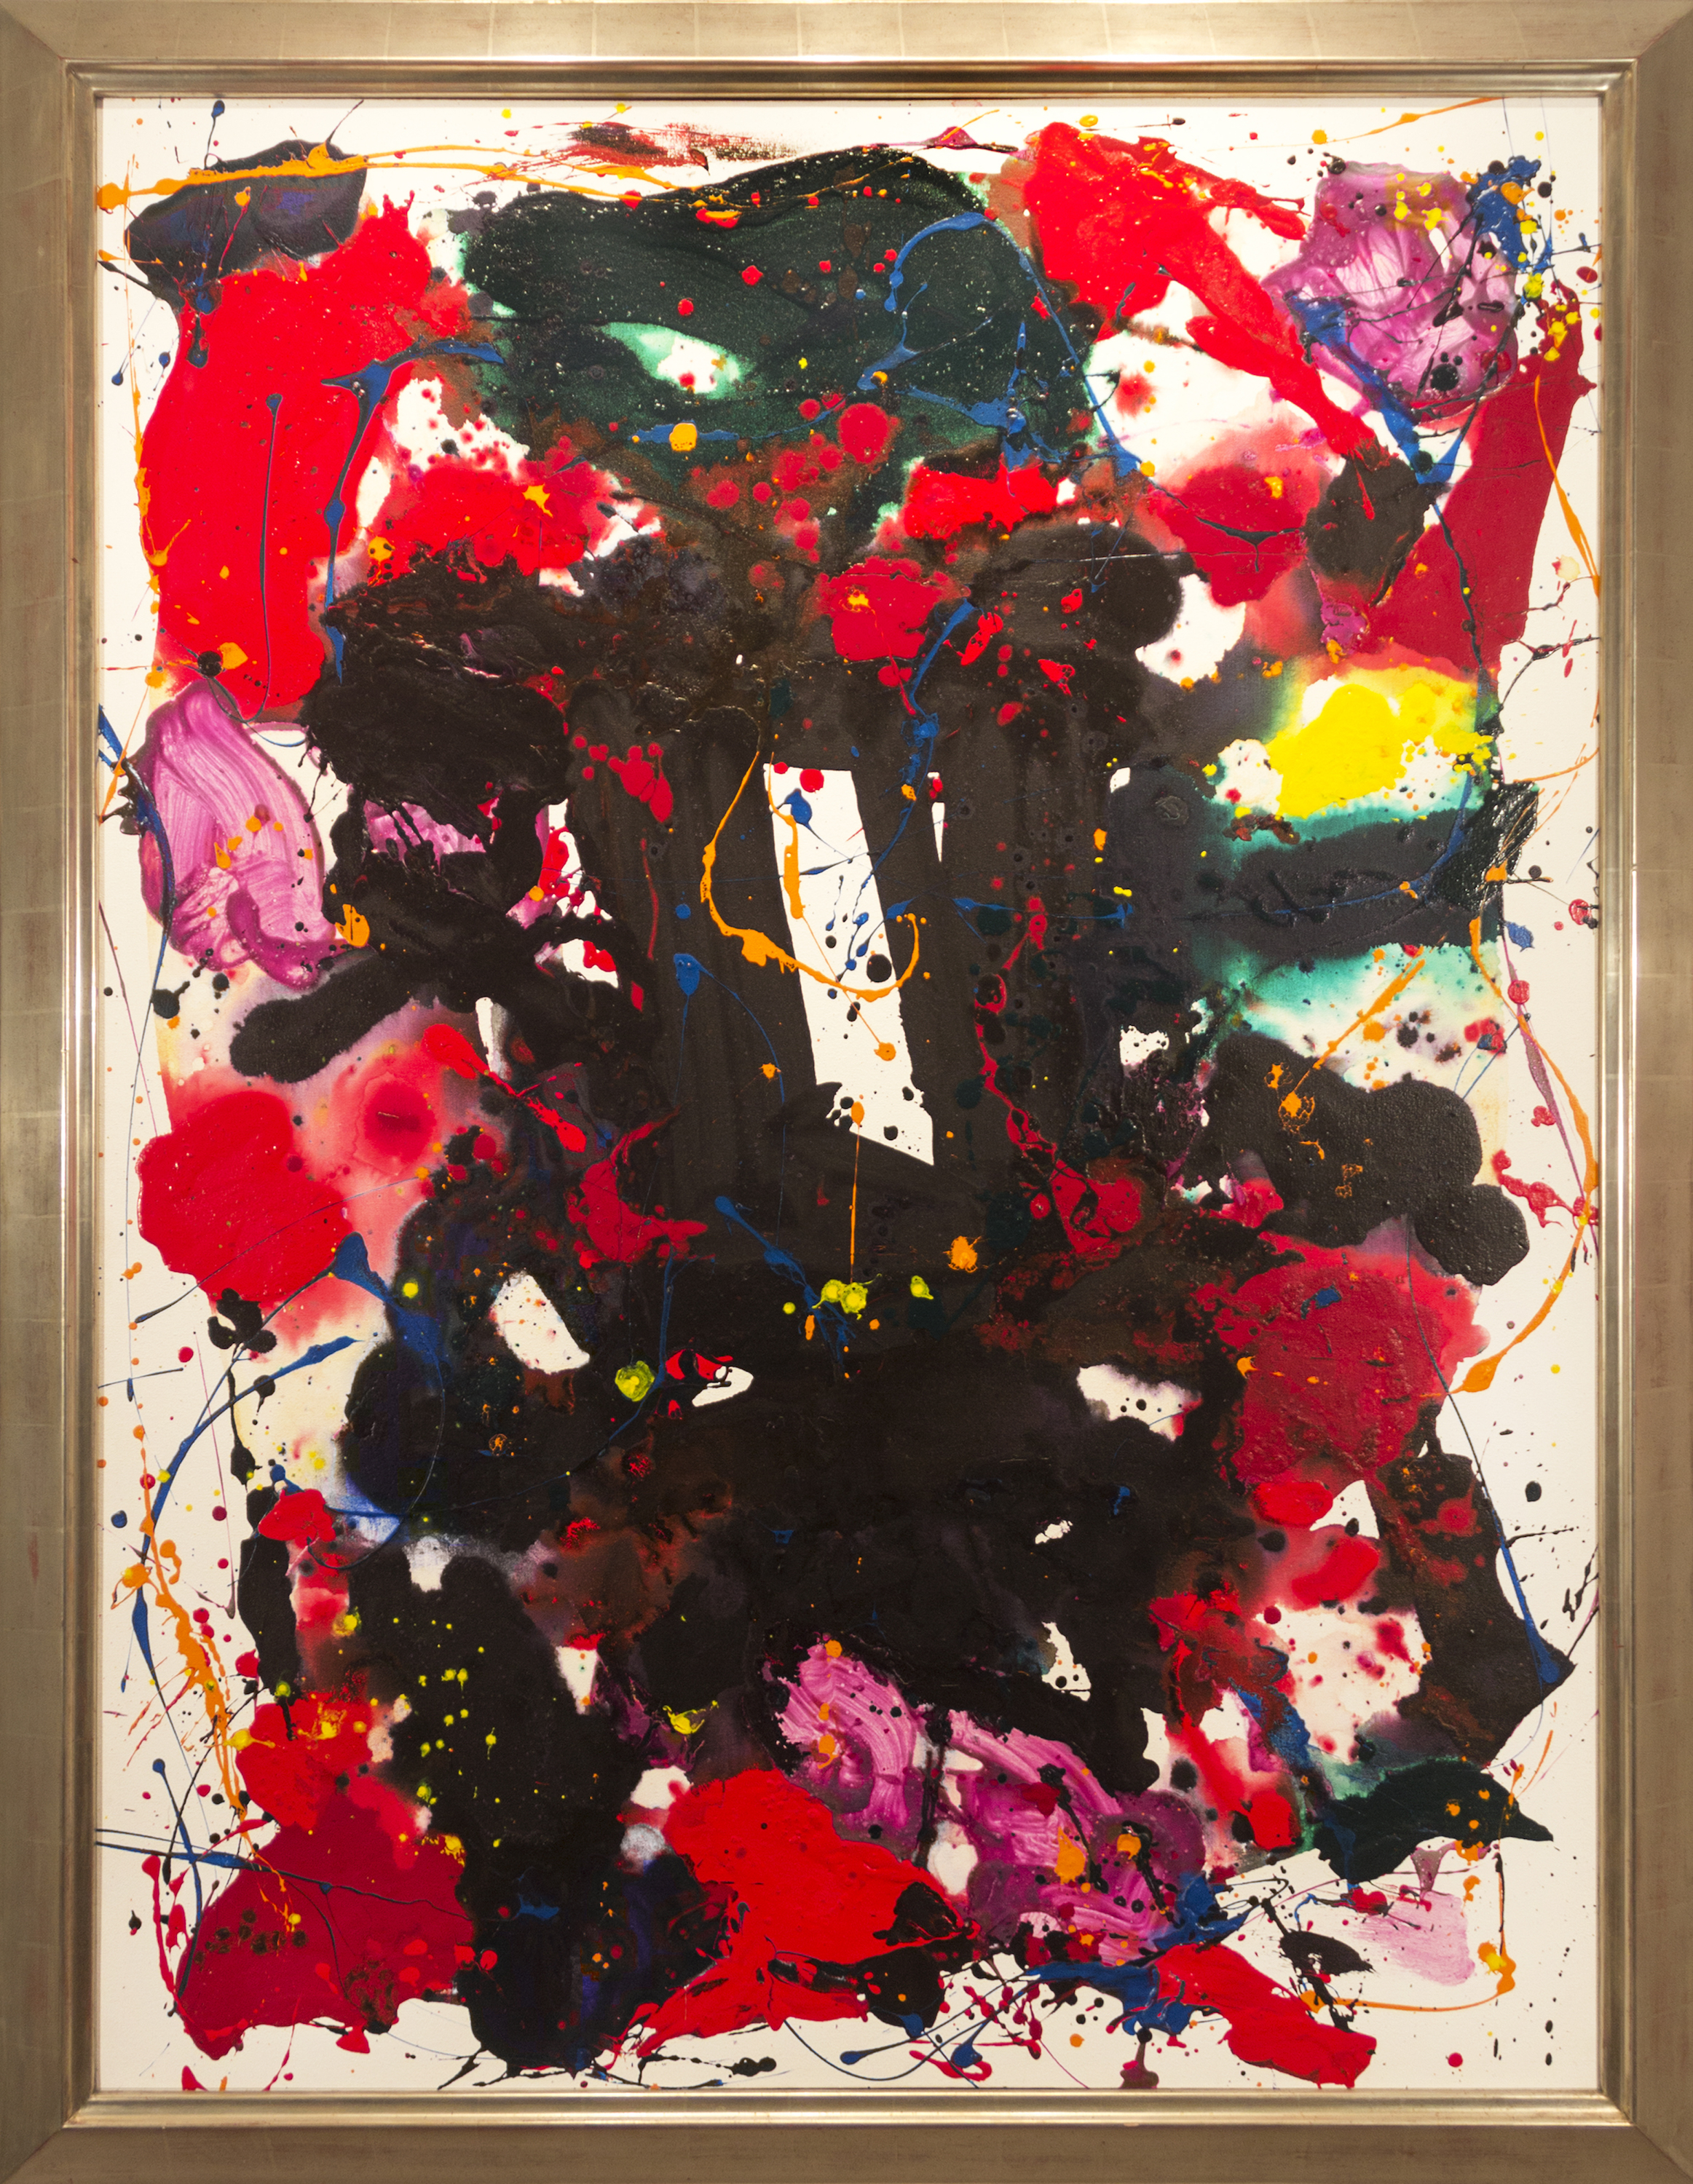 Sam Francis,  Untitled , 1980, oil on canvas, 63 x 48 inches